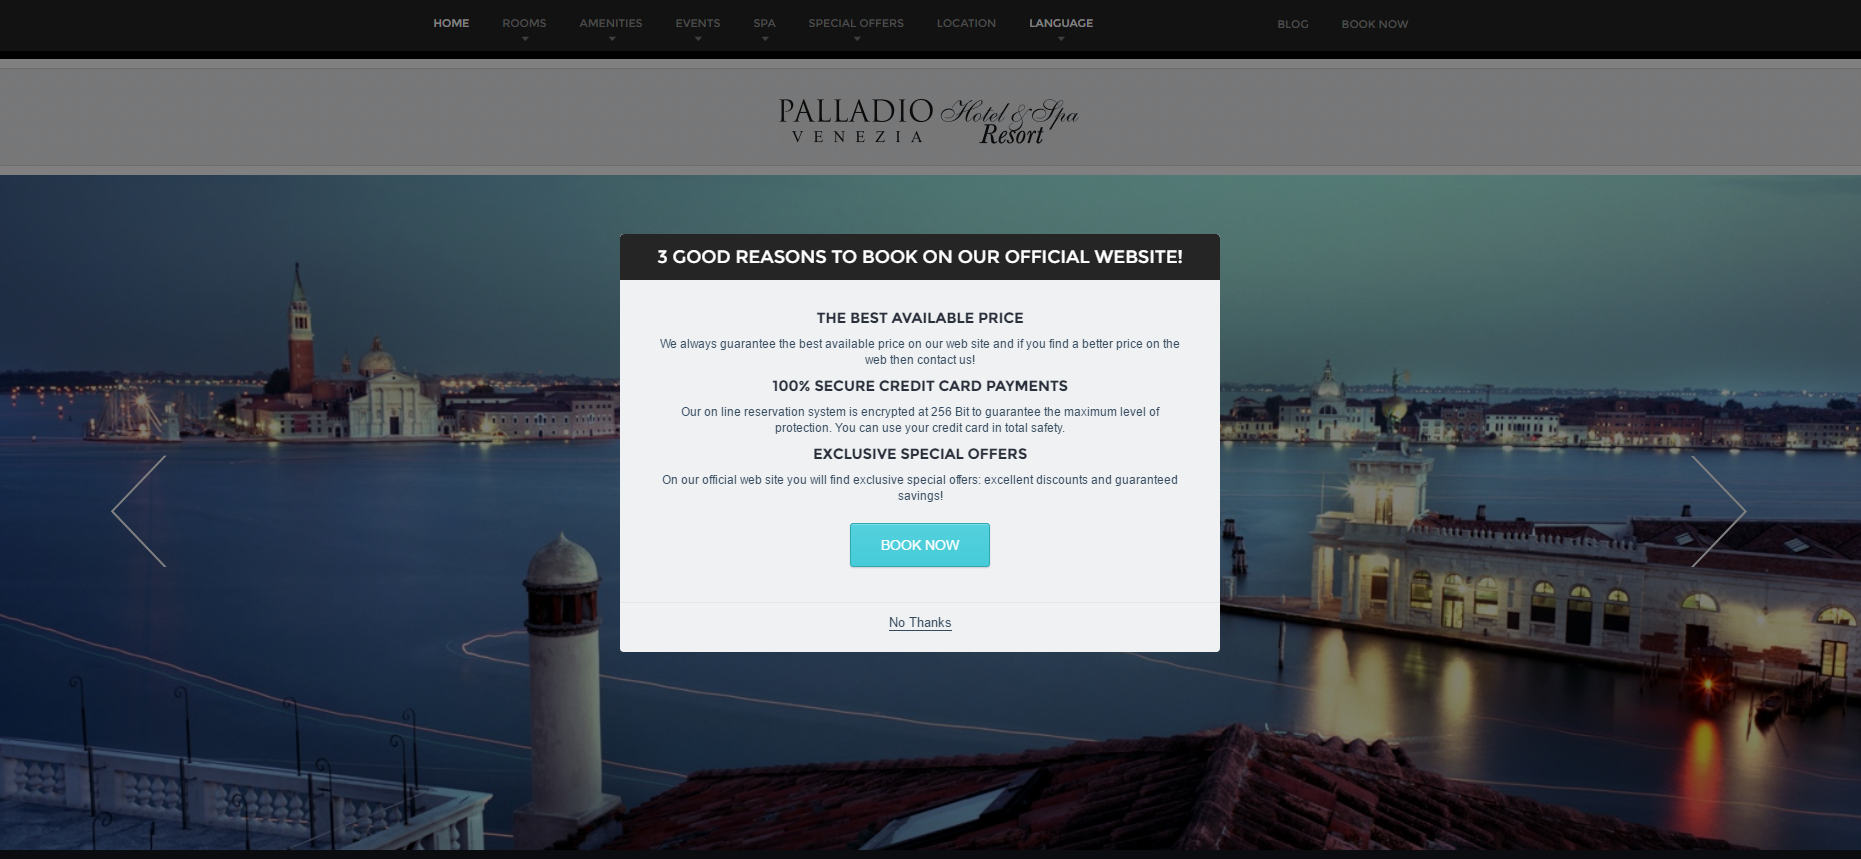 The Palladio hotel website homepage